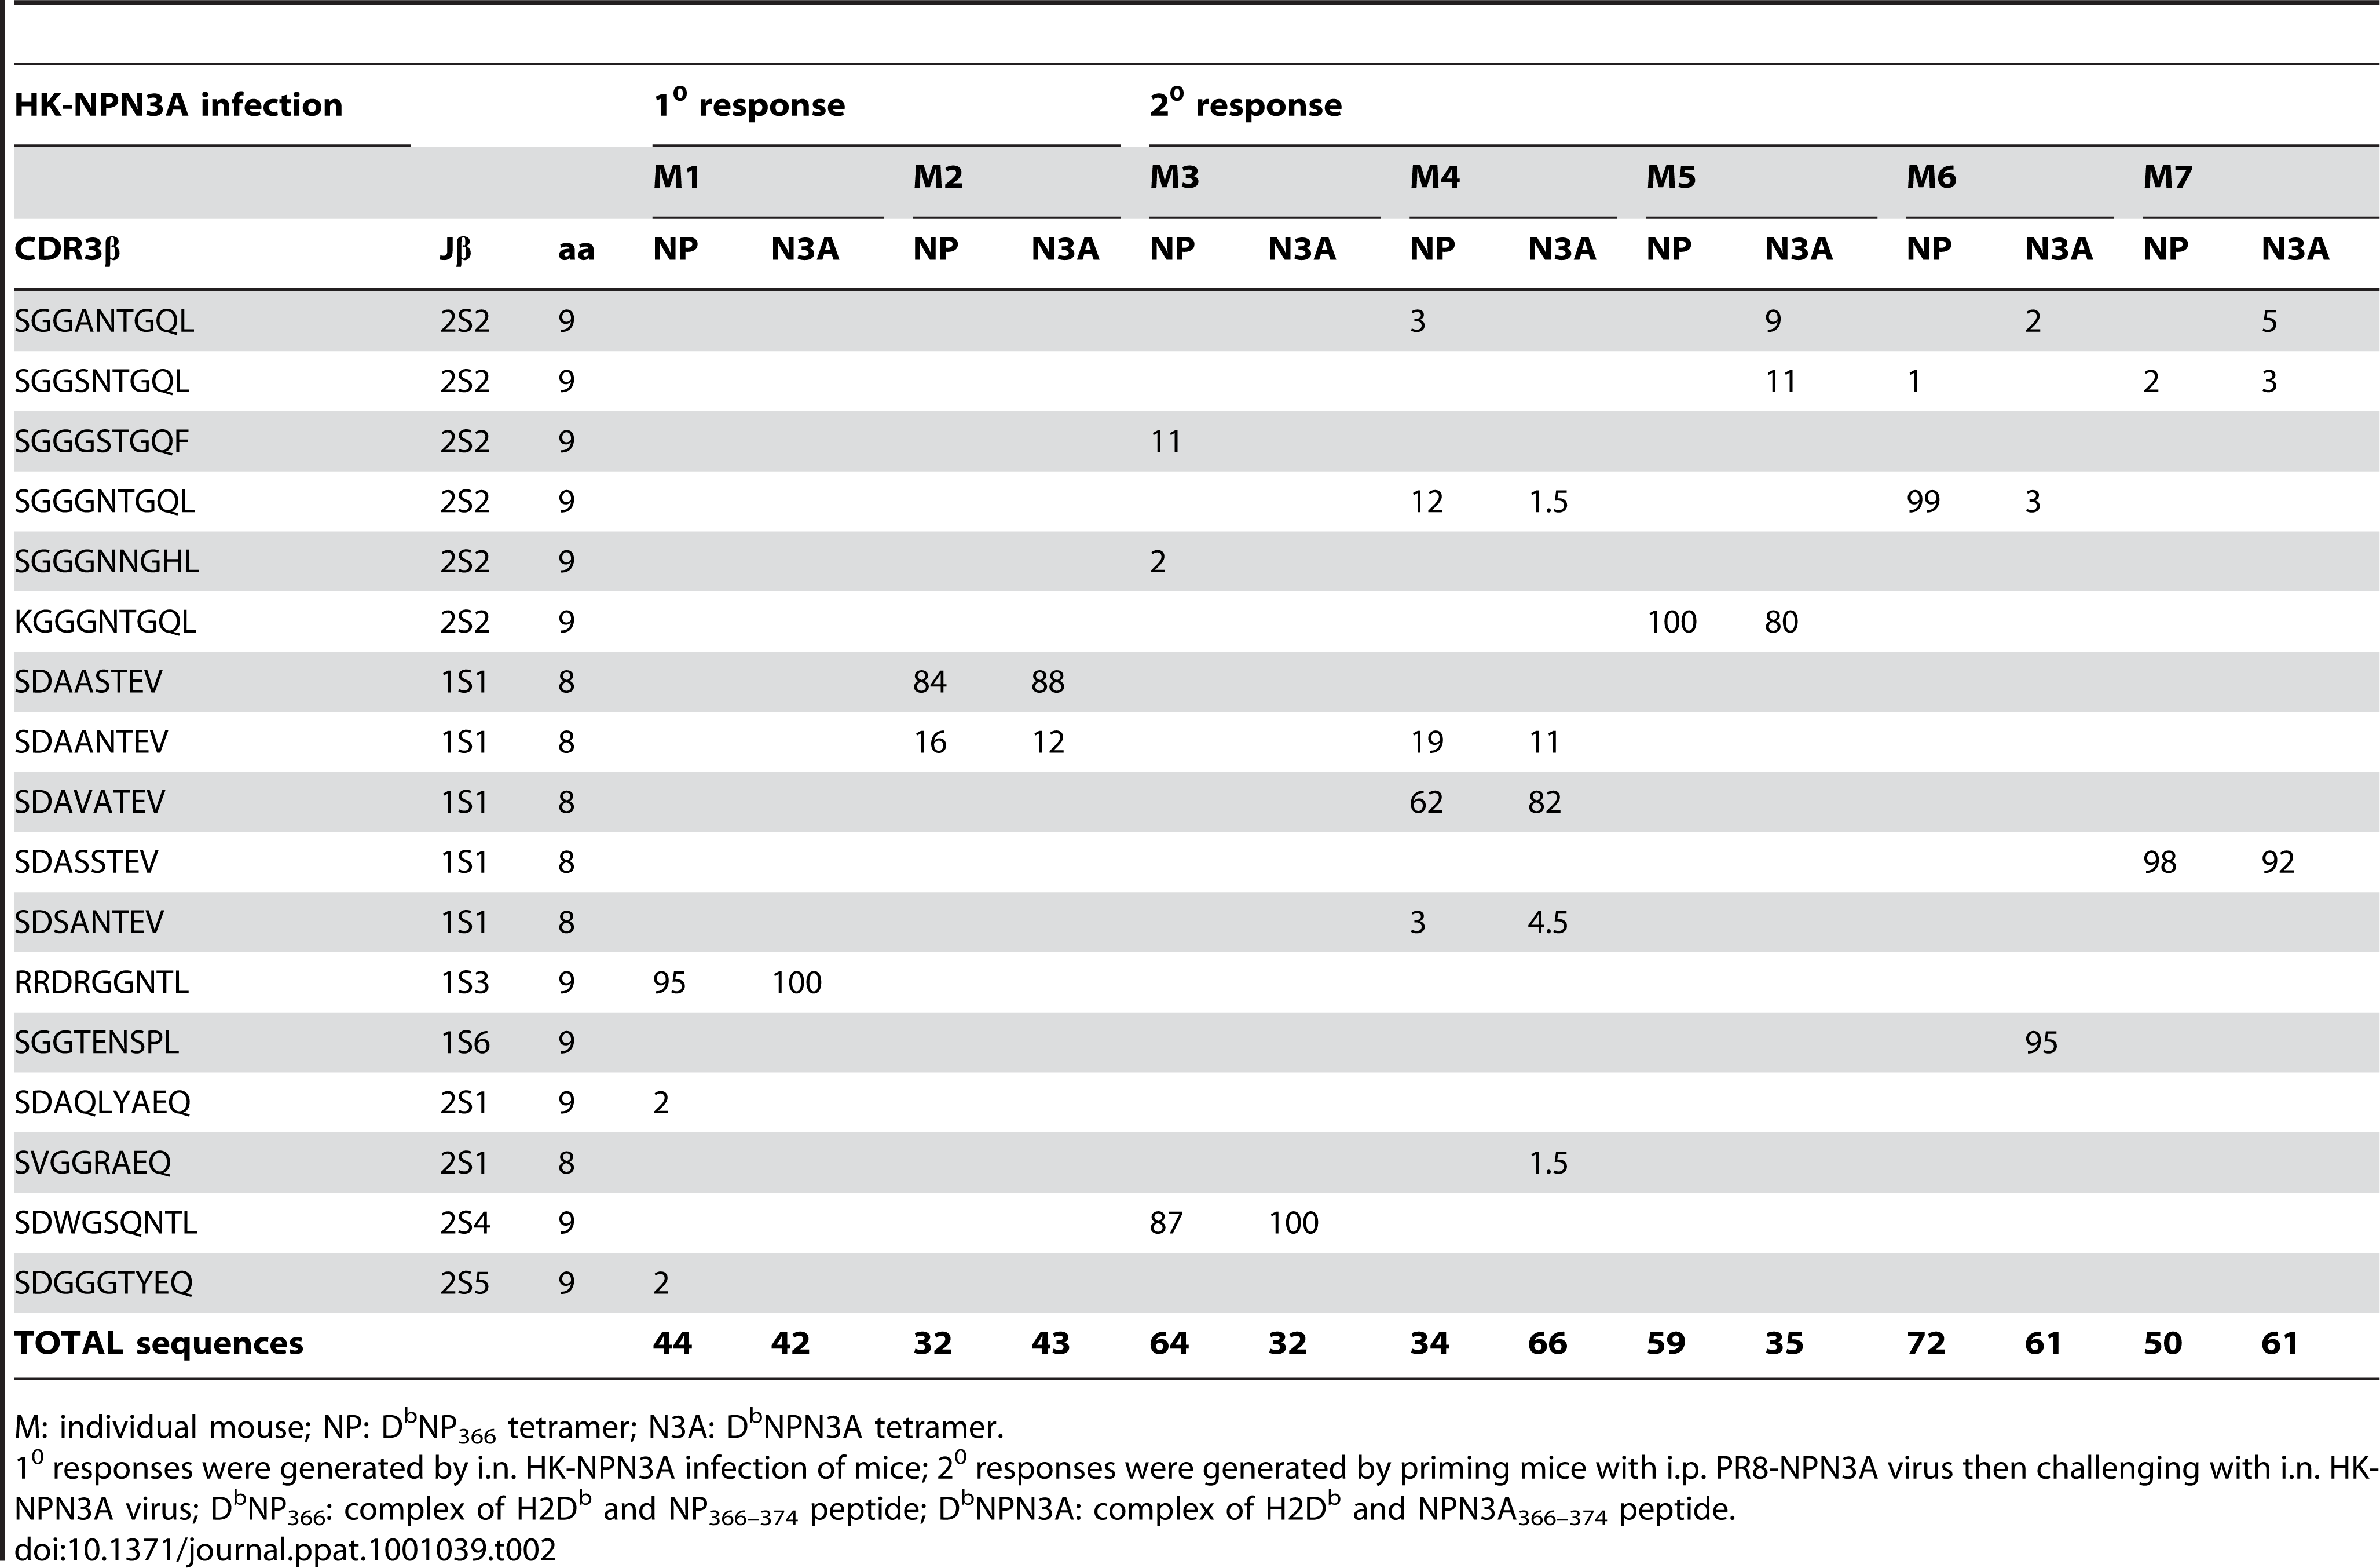 Frequency of TCRβ clonotypes in D<sup>b</sup>NPN3A<sup>+</sup> Vβ8.3<sup>+</sup>CD8<sup>+</sup> T cells after 1<sup>0</sup> (M1, M2) and 2<sup>0</sup> (M3 to M7) mutant HK-NPN3A infection detected with either the D<sup>b</sup>NP<sub>366</sub><sup>+</sup> or D<sup>b</sup>NPN3A<sup>+</sup> tetramer.